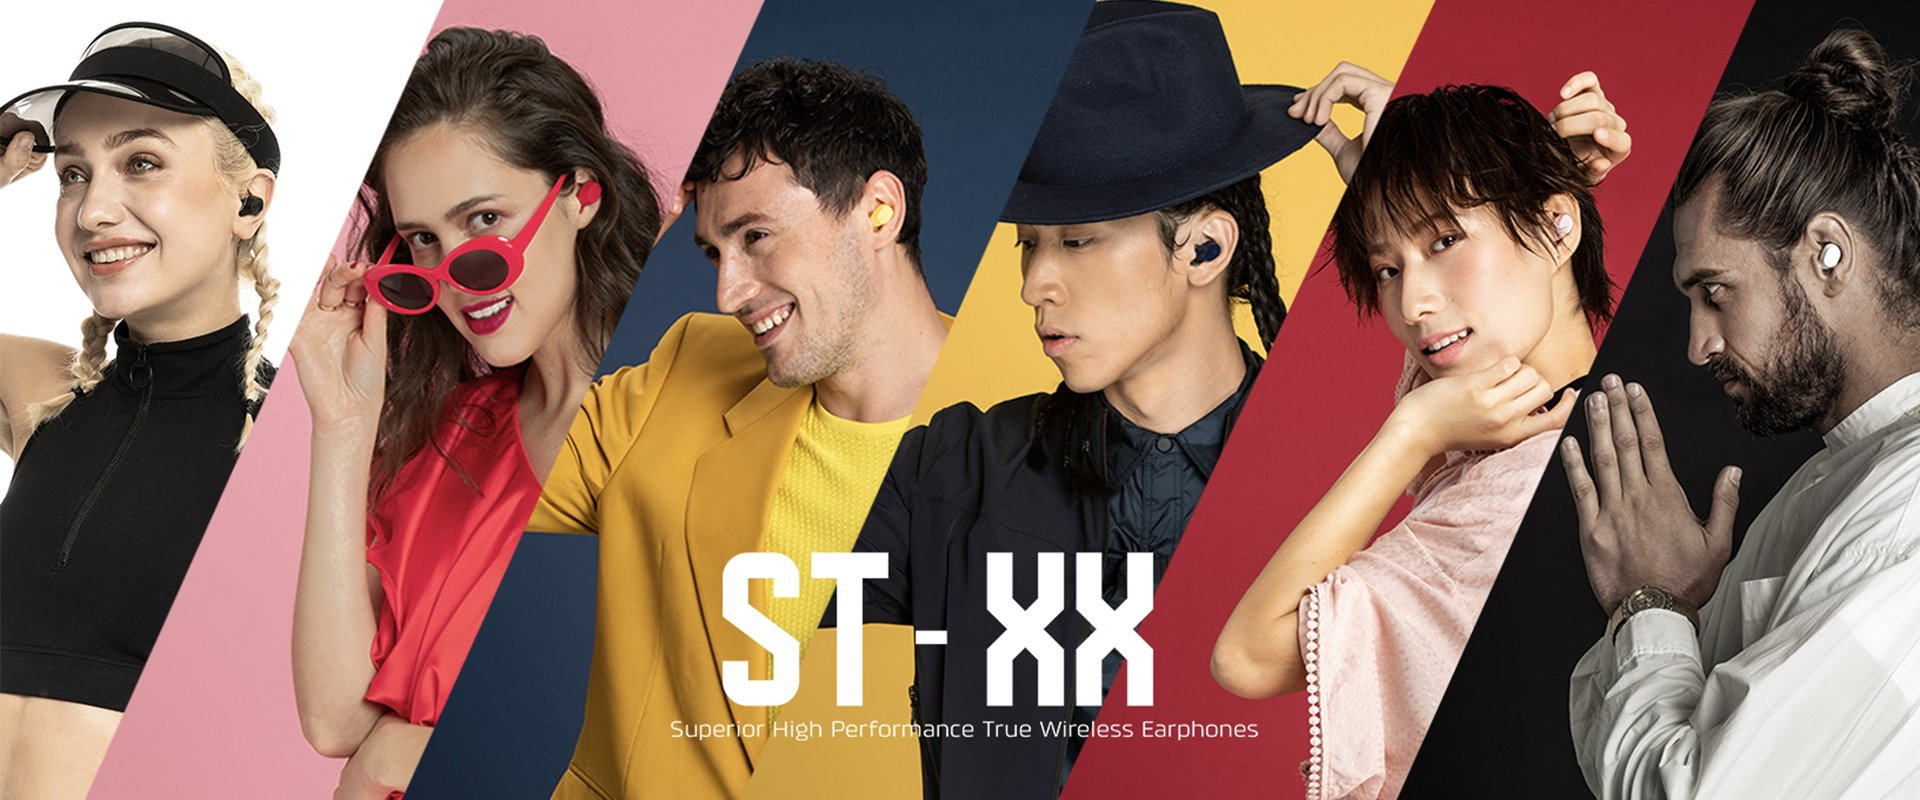 SOUL STXX True Wireless Earphones